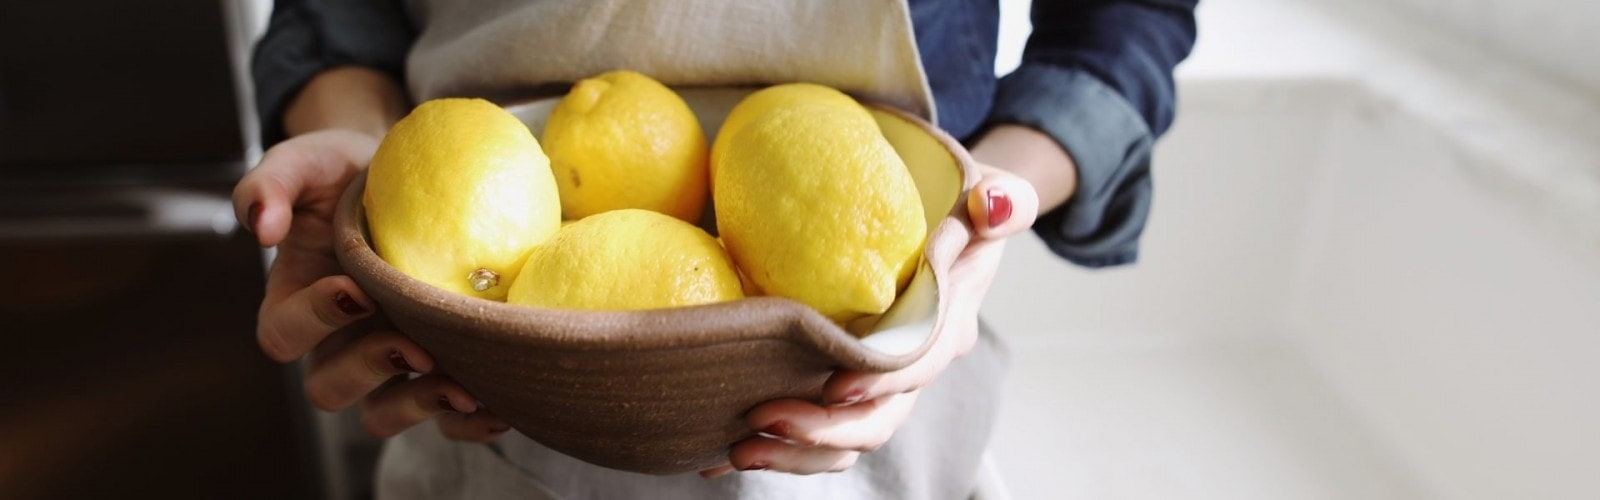 Photo of a woman in an apron holding a bowl full of lemons while standing next to a sink in a kitchen